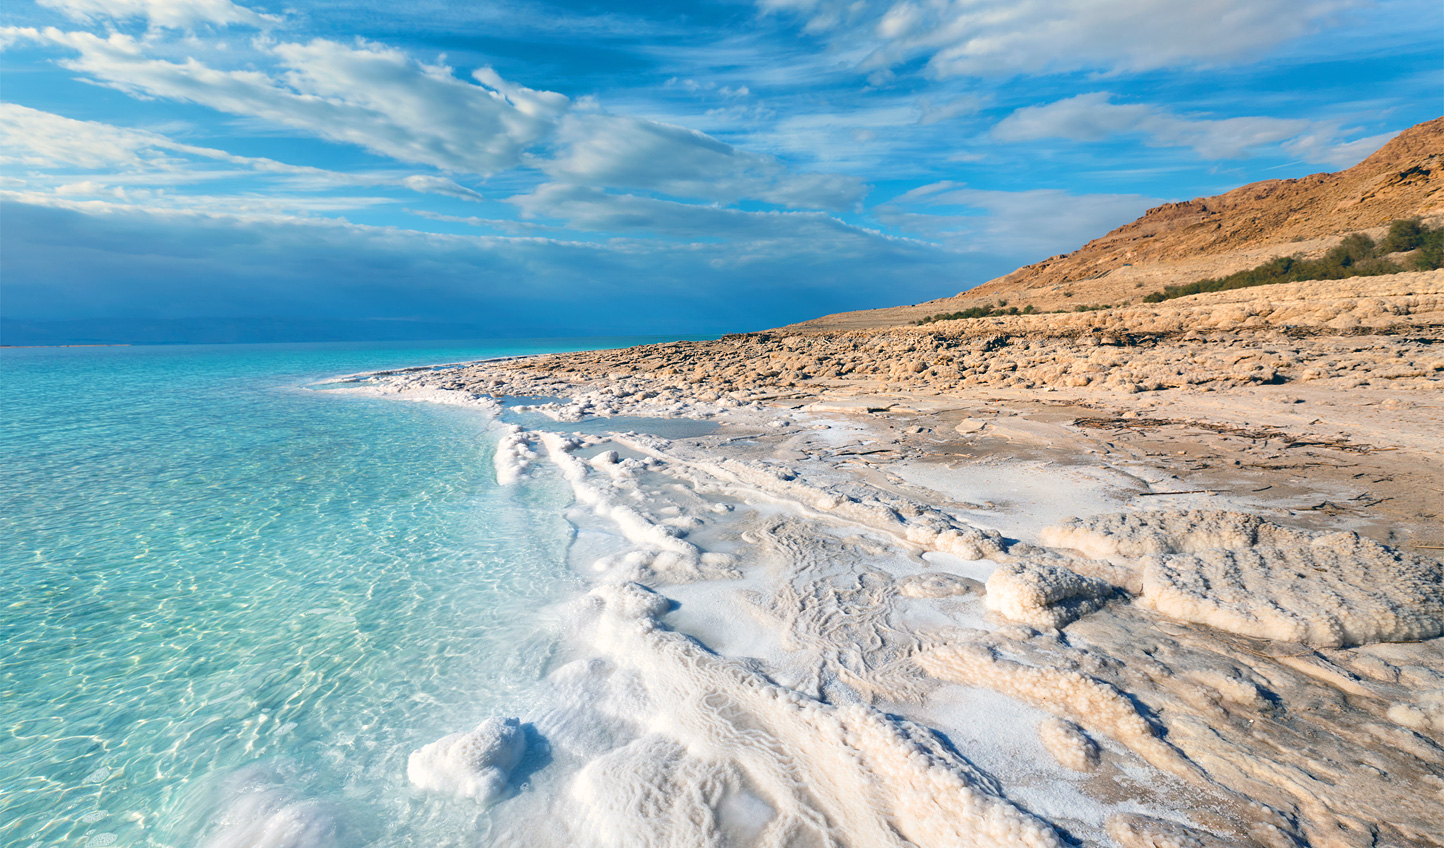 Walk the salt crusted shores of the Dead Sea